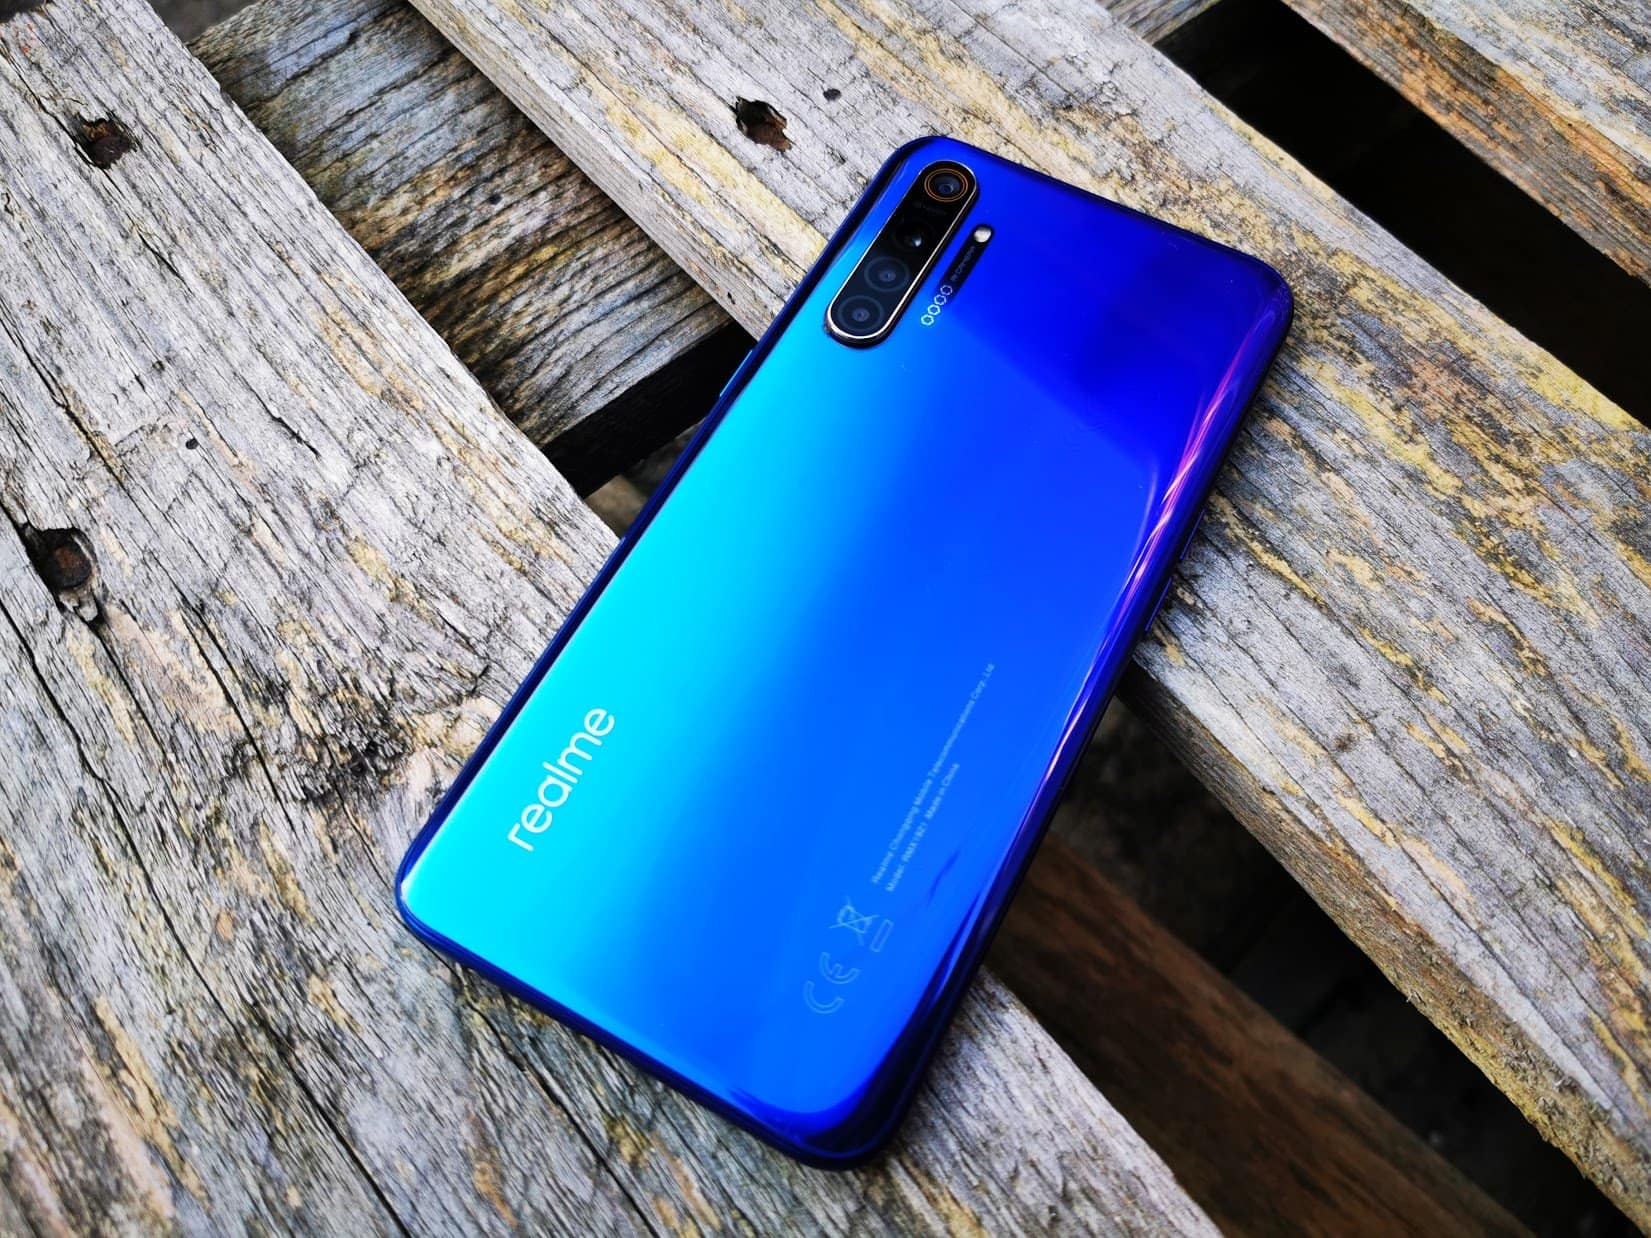 Realme X2 Review – Probably the best sub £300 Android phone right now